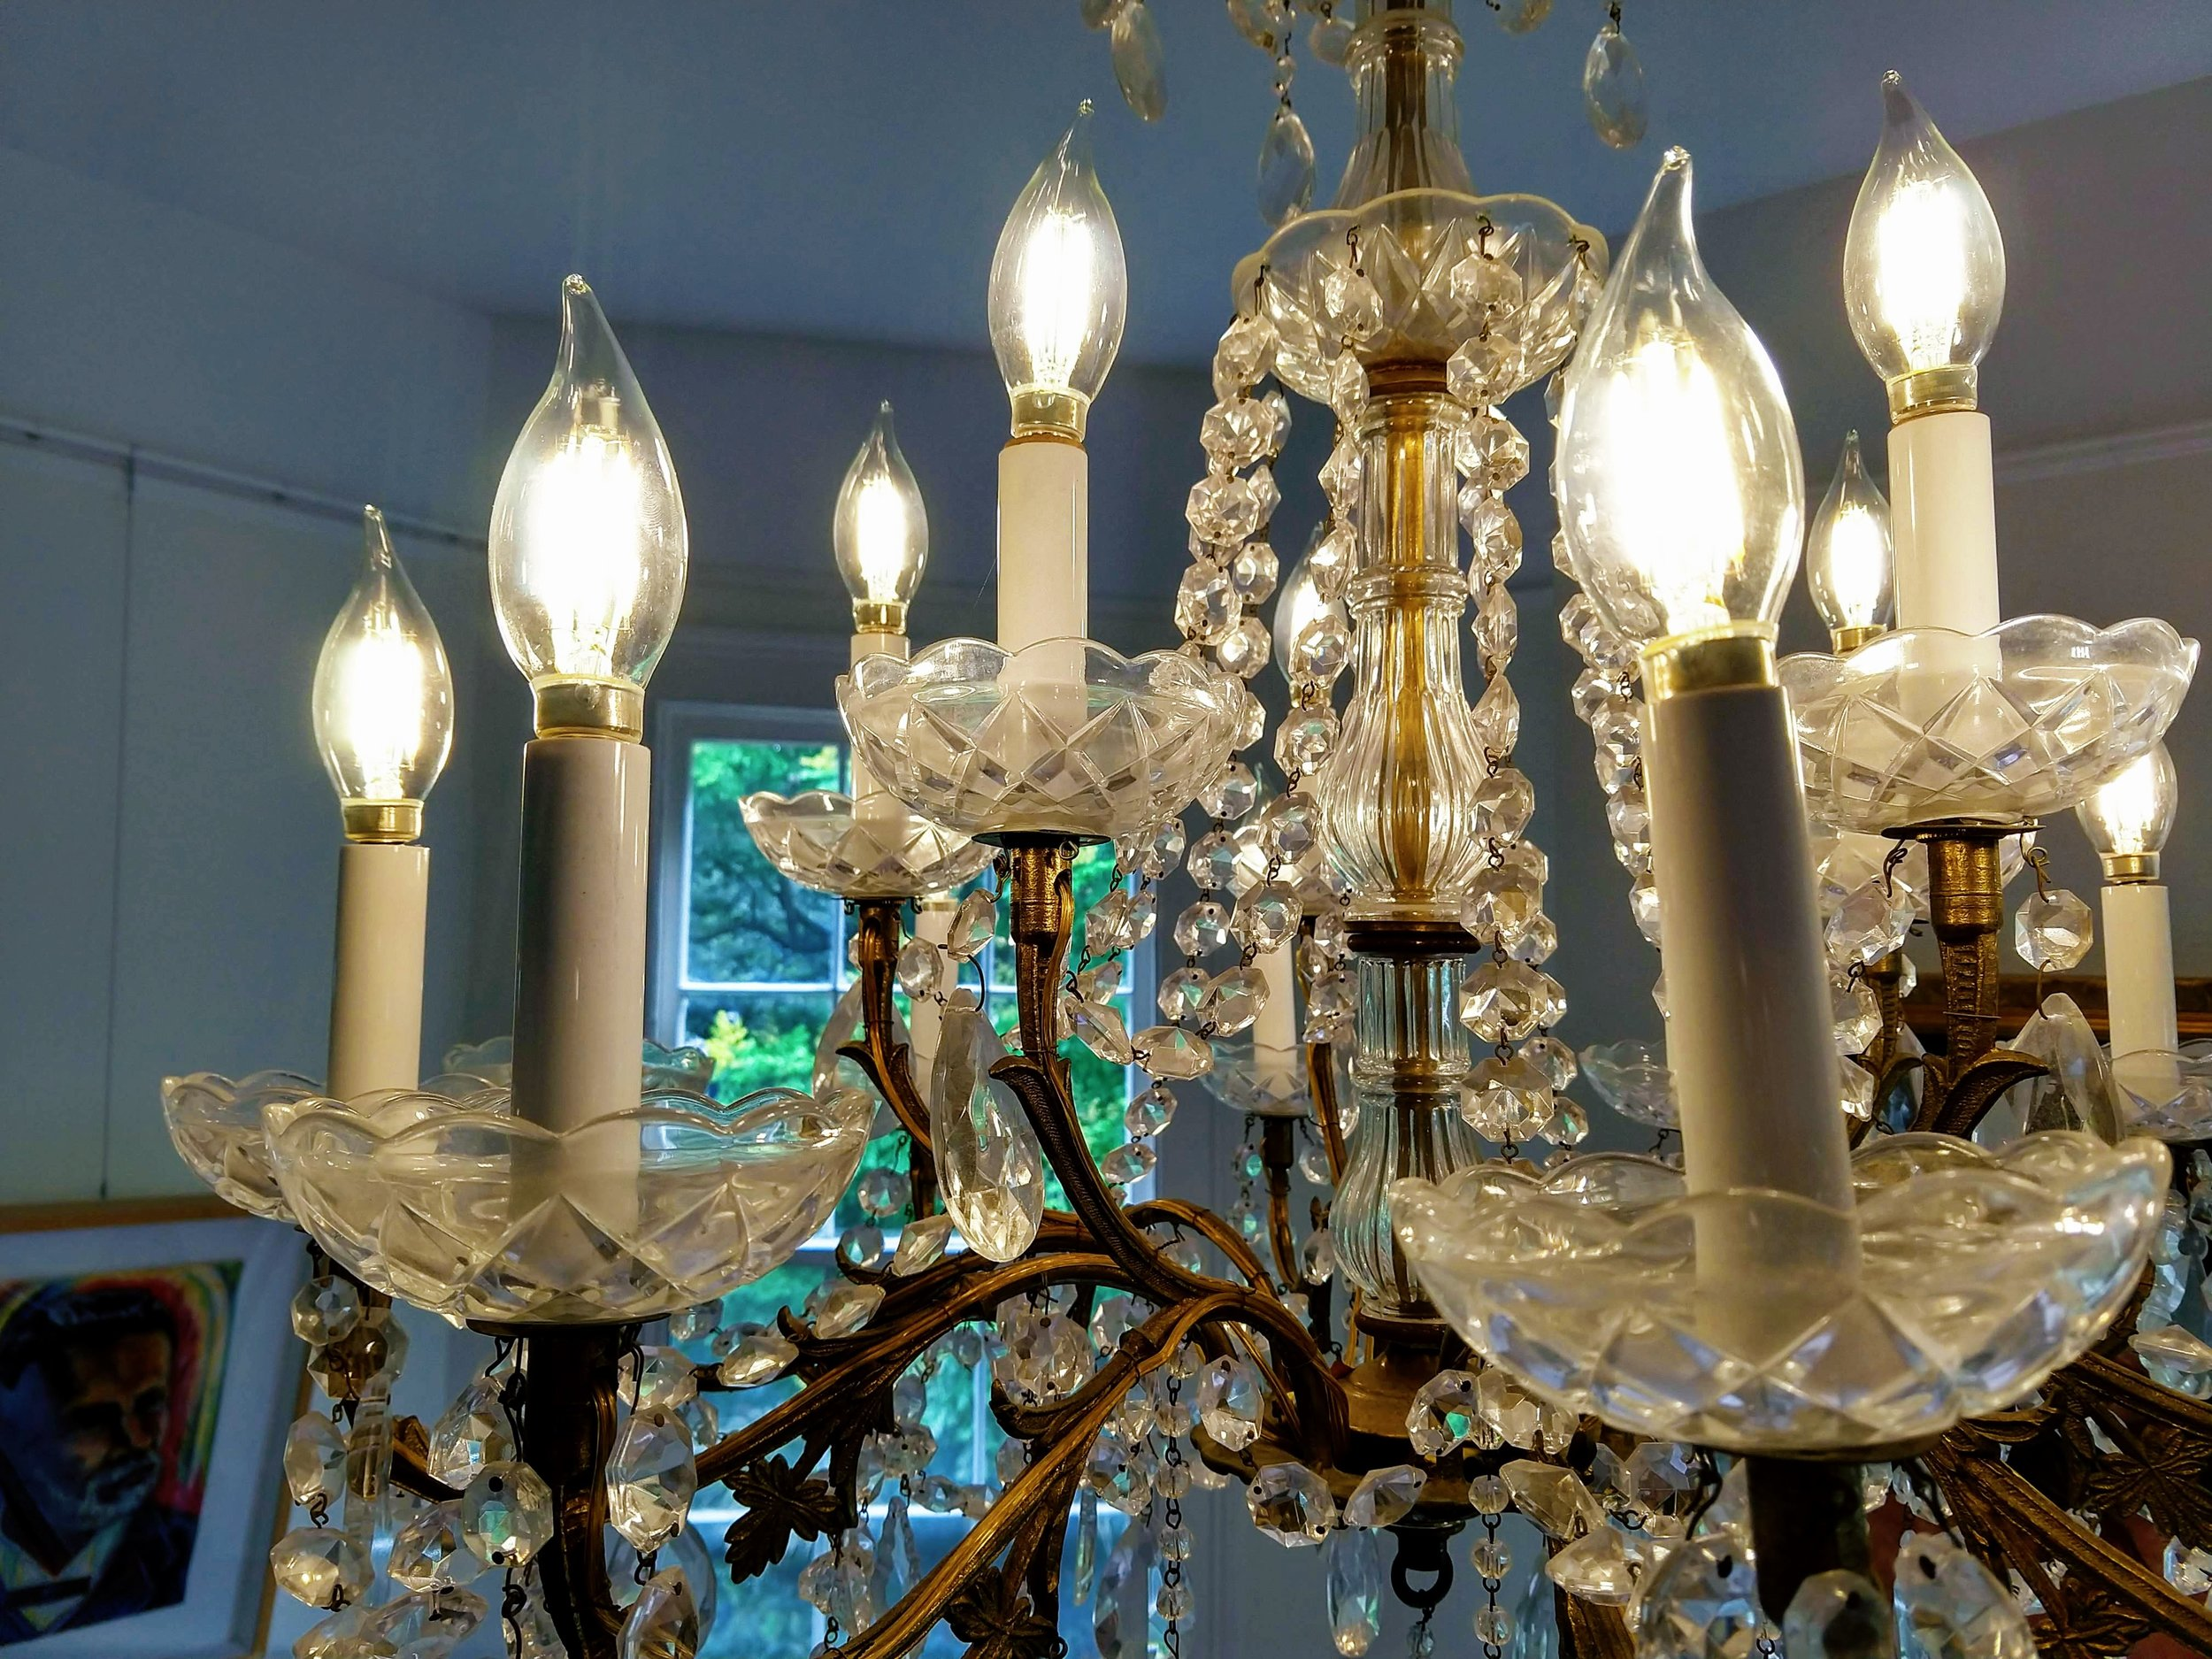 custom fixtures can be upgraded to keep their historic look and feel.